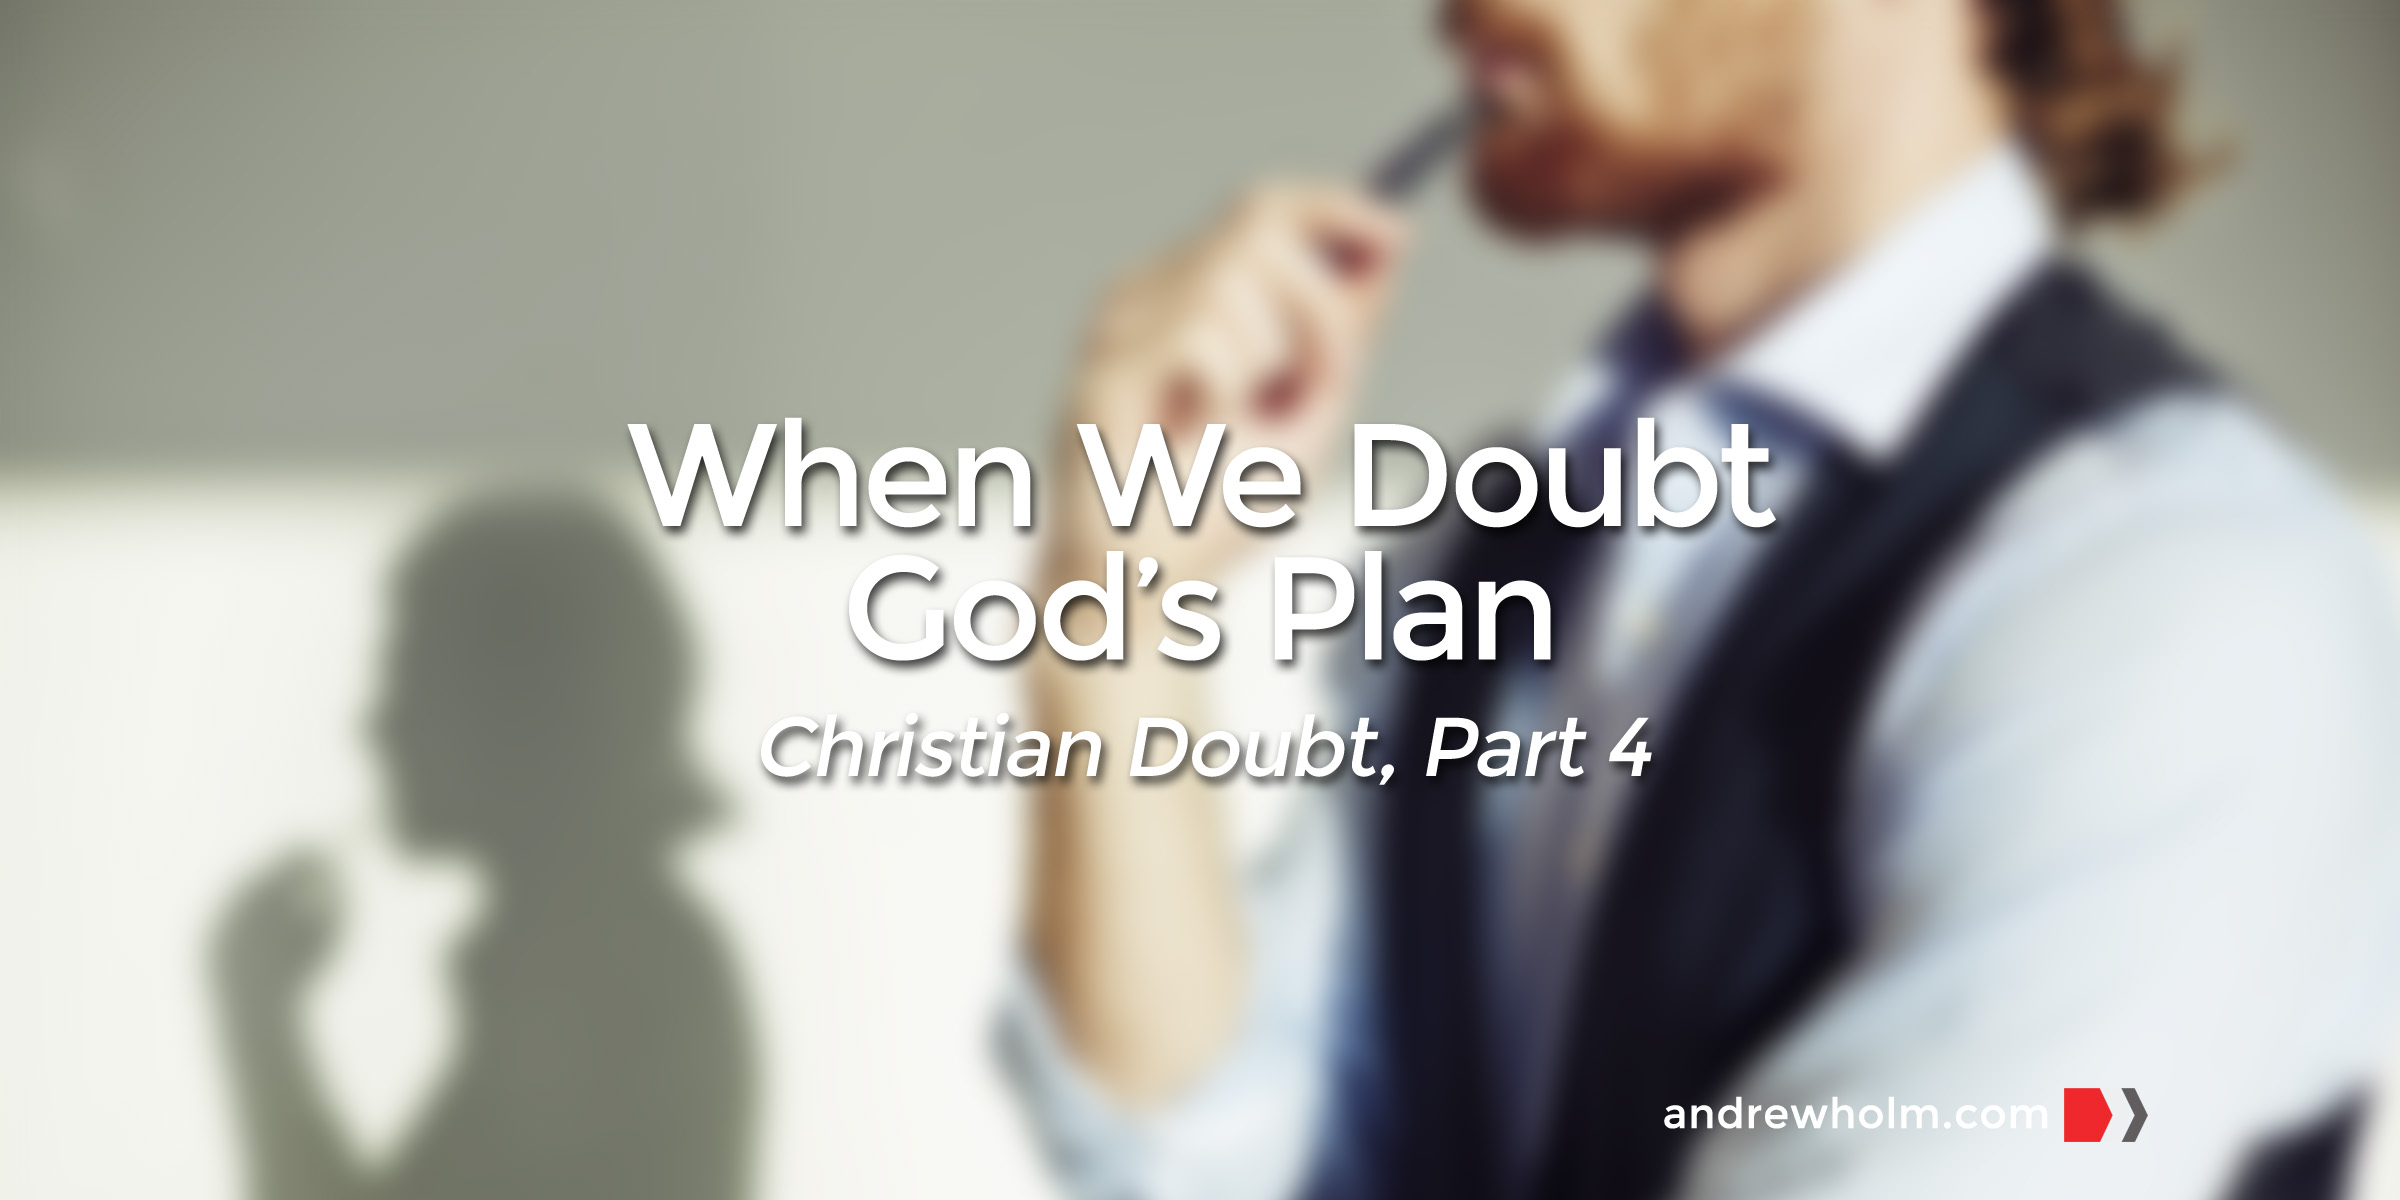 Christian Doubt, Part 4